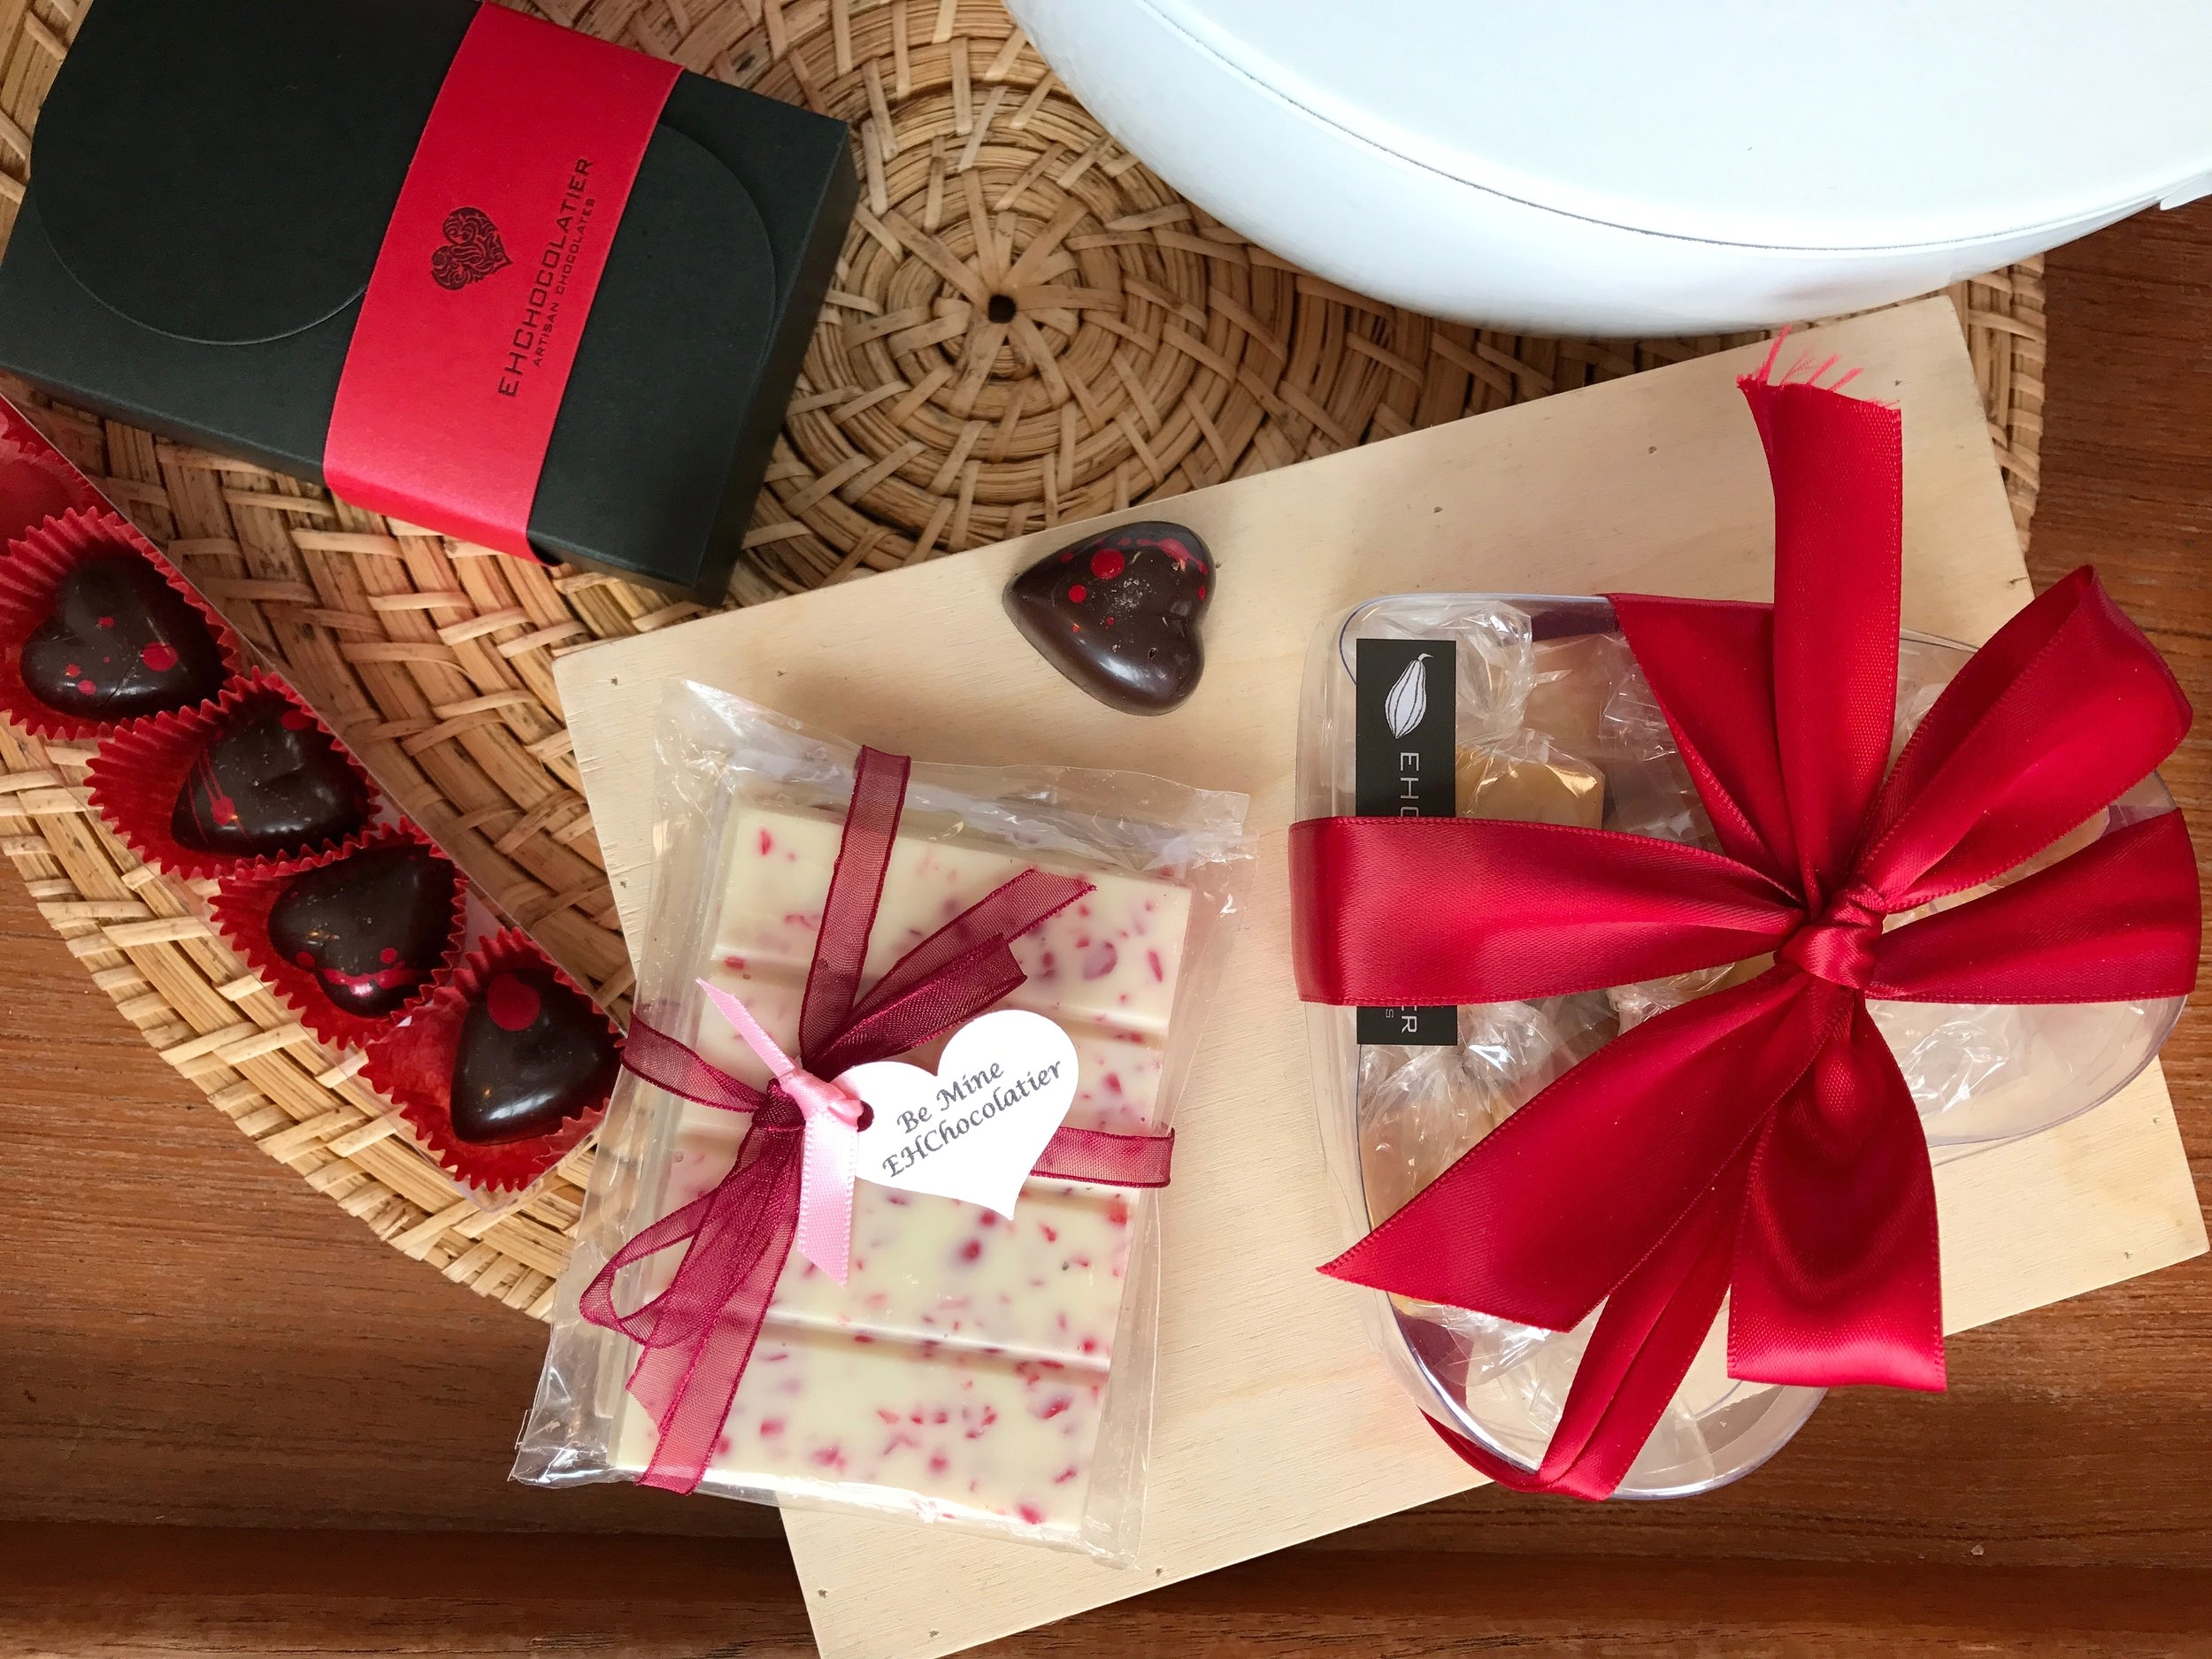 Valentine's Black Box Assorted Bonbons (6-piece), Heart Box of Passion-fruit Caramels (10 pieces), Red Hot Crunch Bar (set of 2), Bee Mine honey caramel spice Bonbons (5-piece)